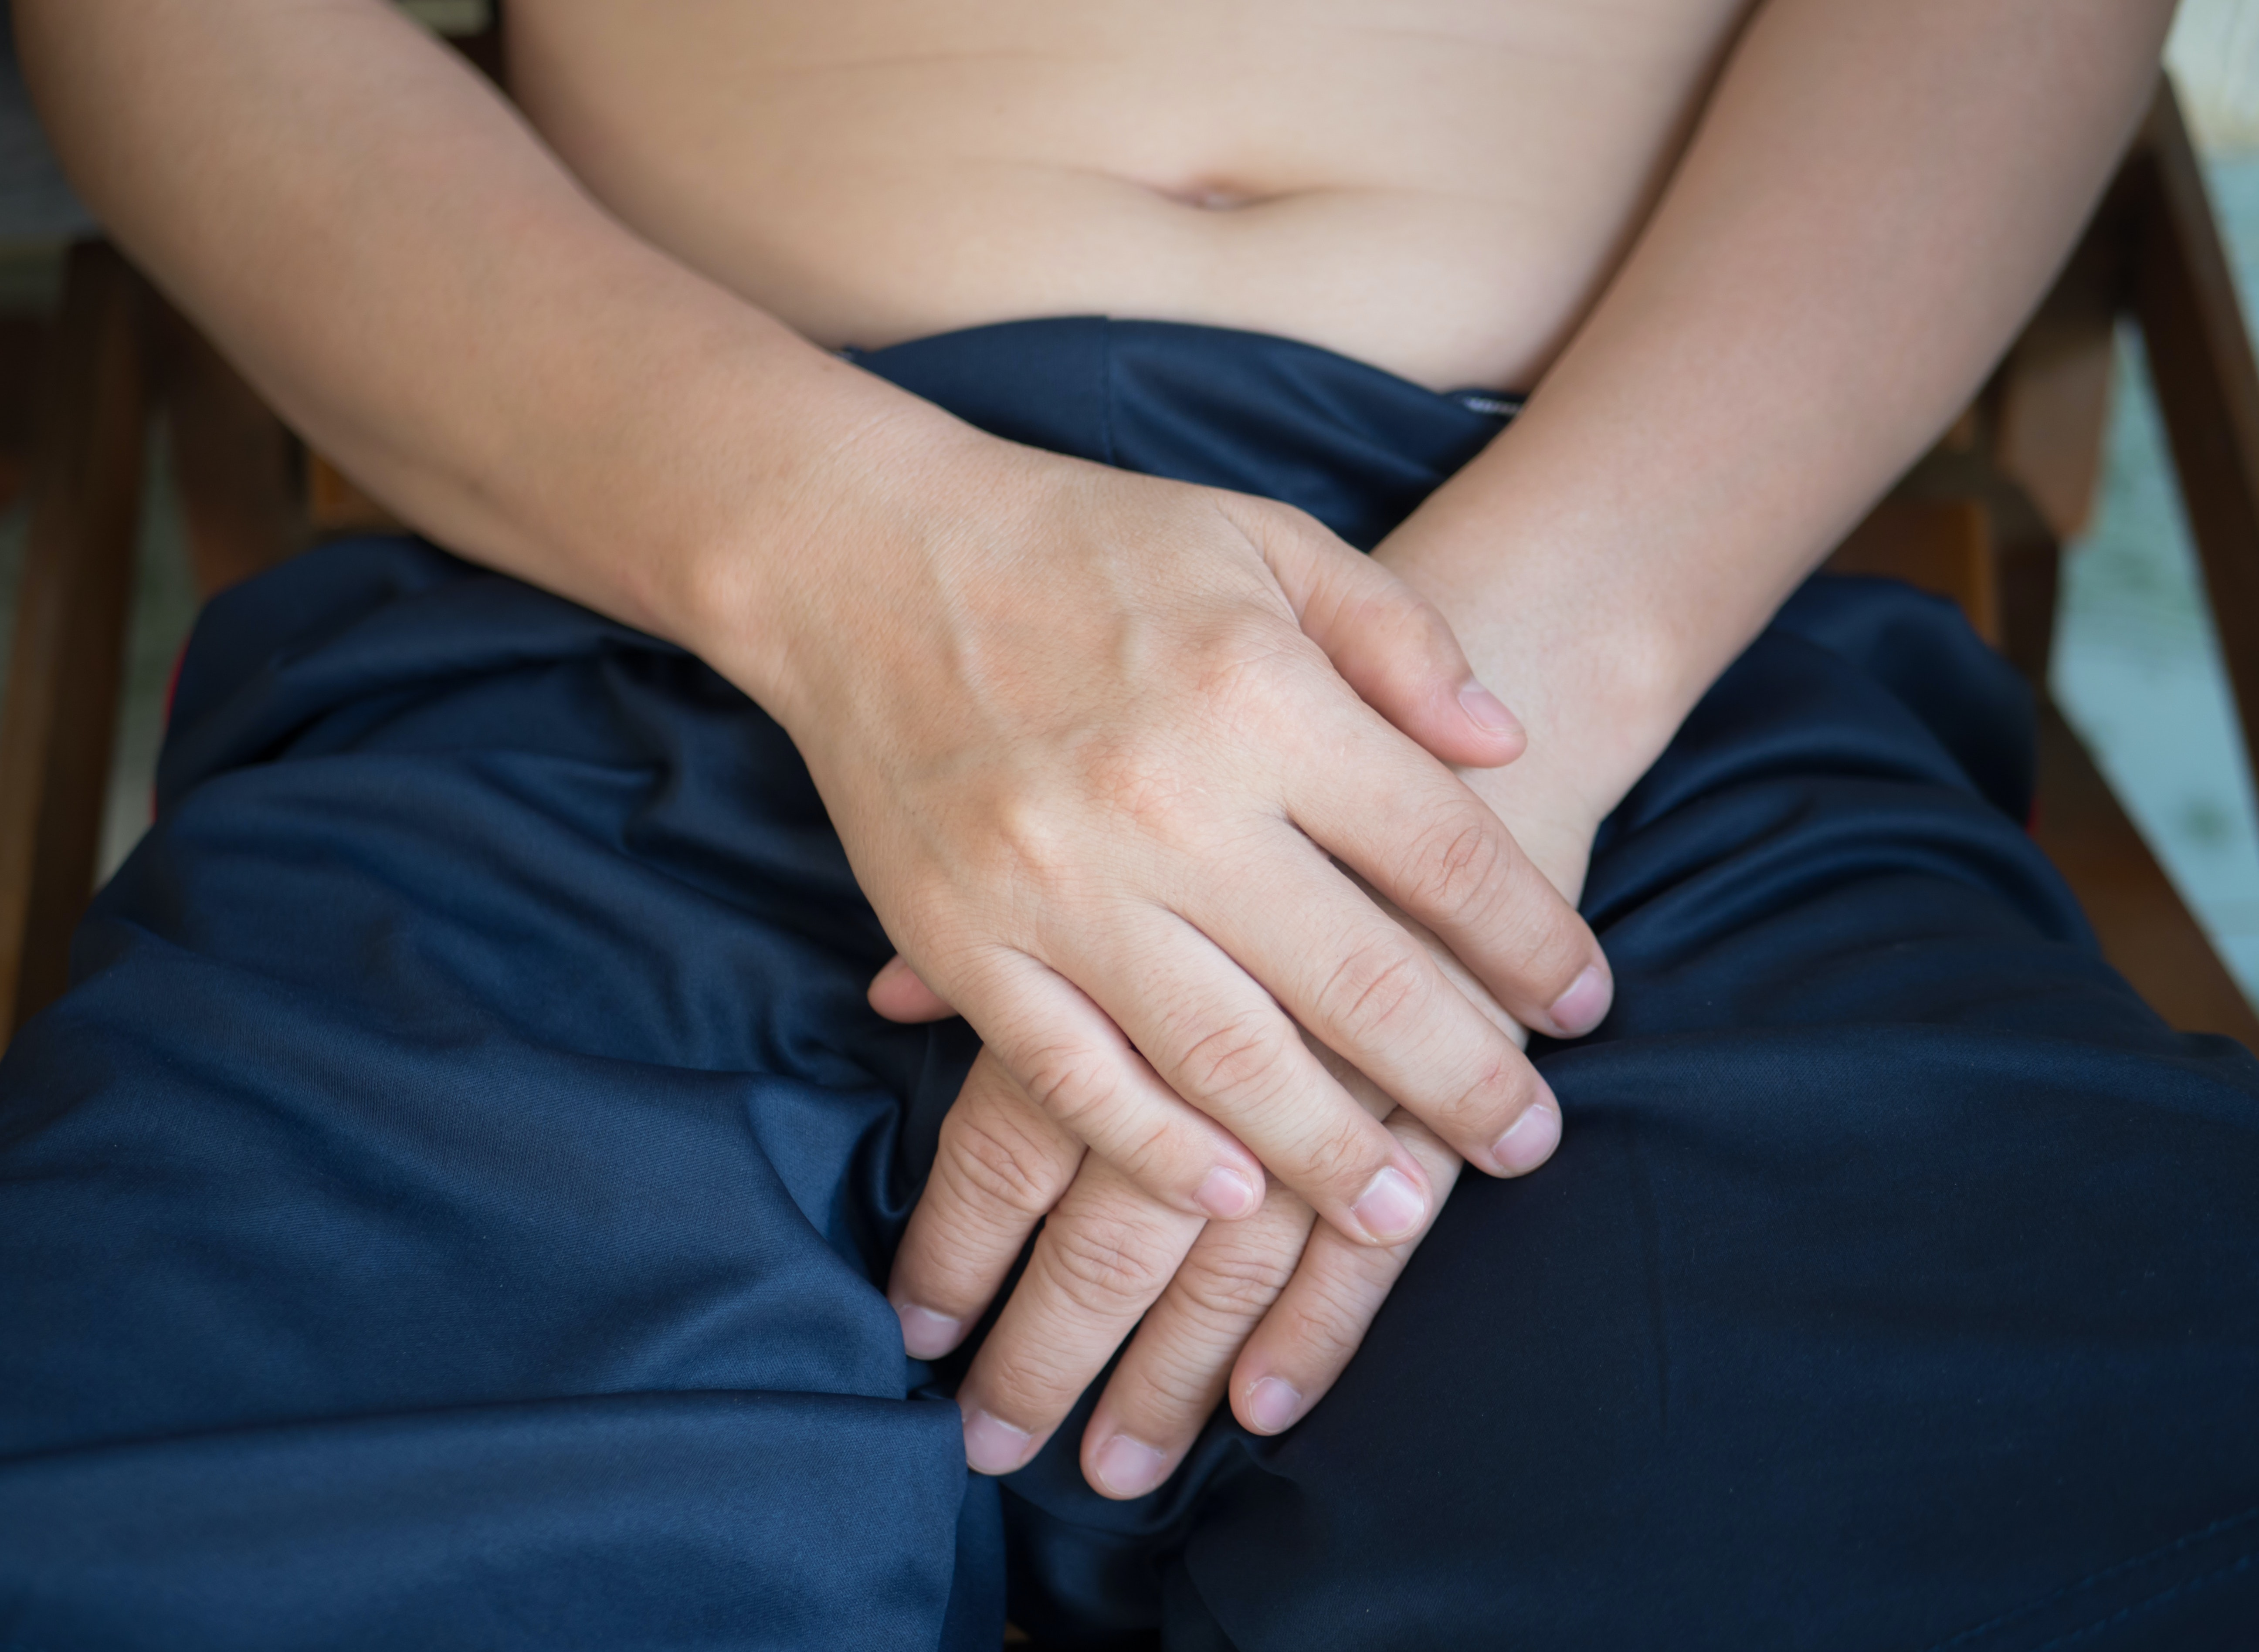 An image depicting a person suffering from hard groin lump symptoms